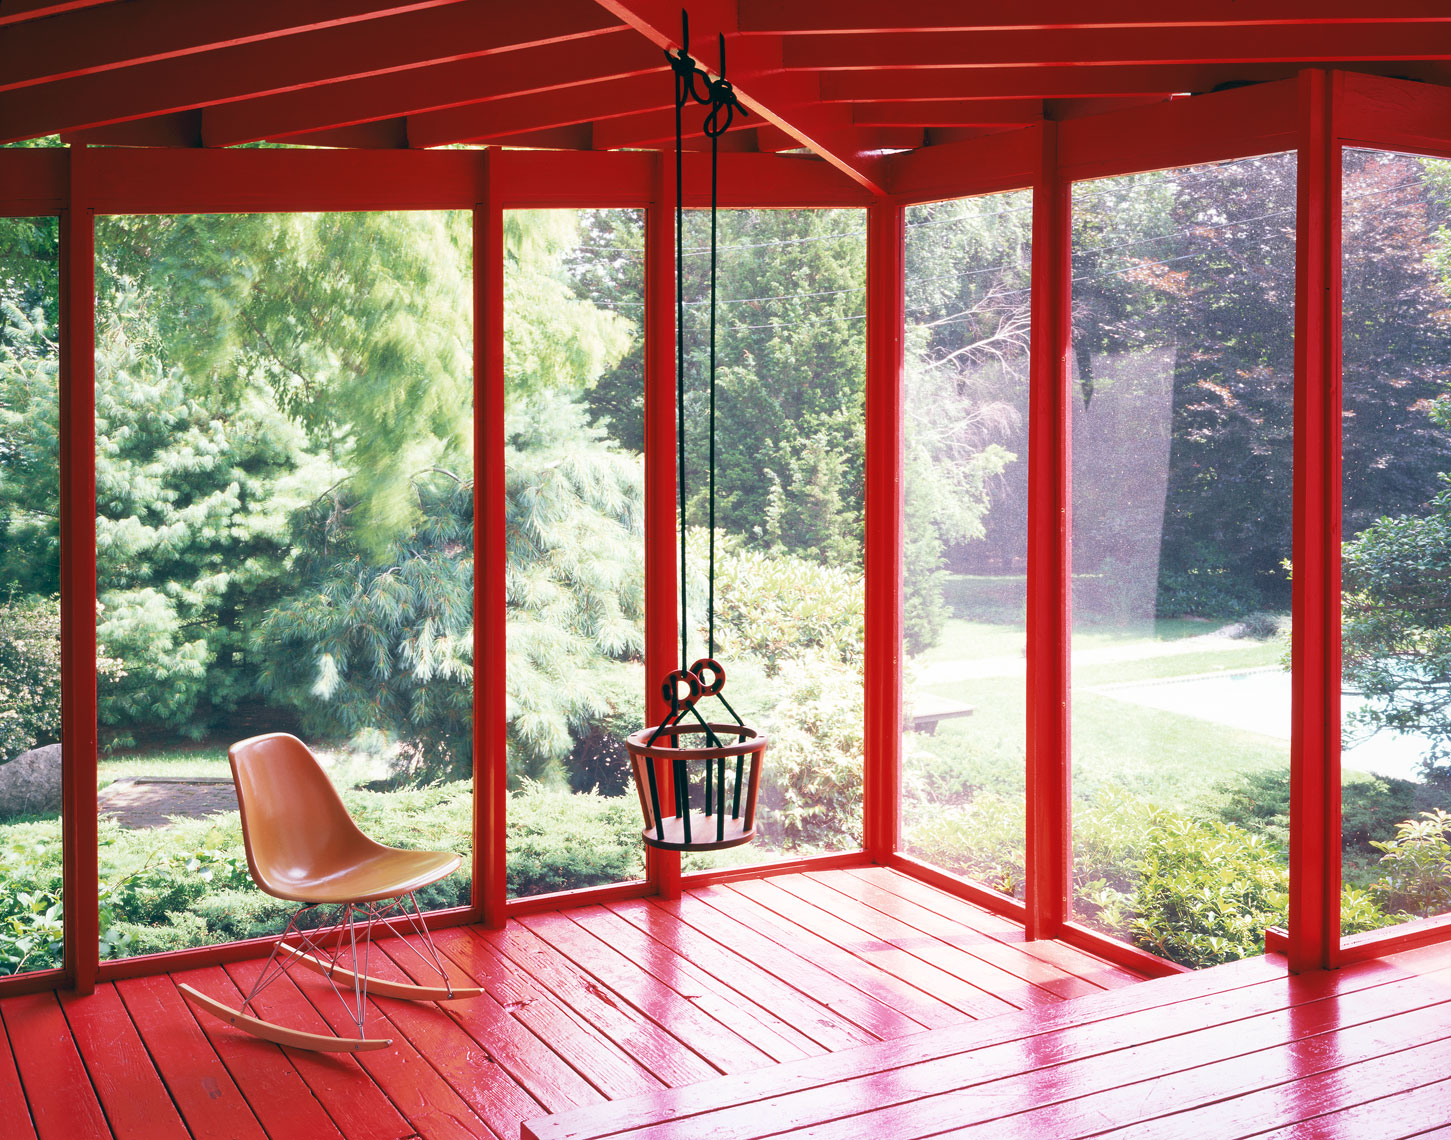 100-Roger_Davies_I_Pardo_red_porch_touched